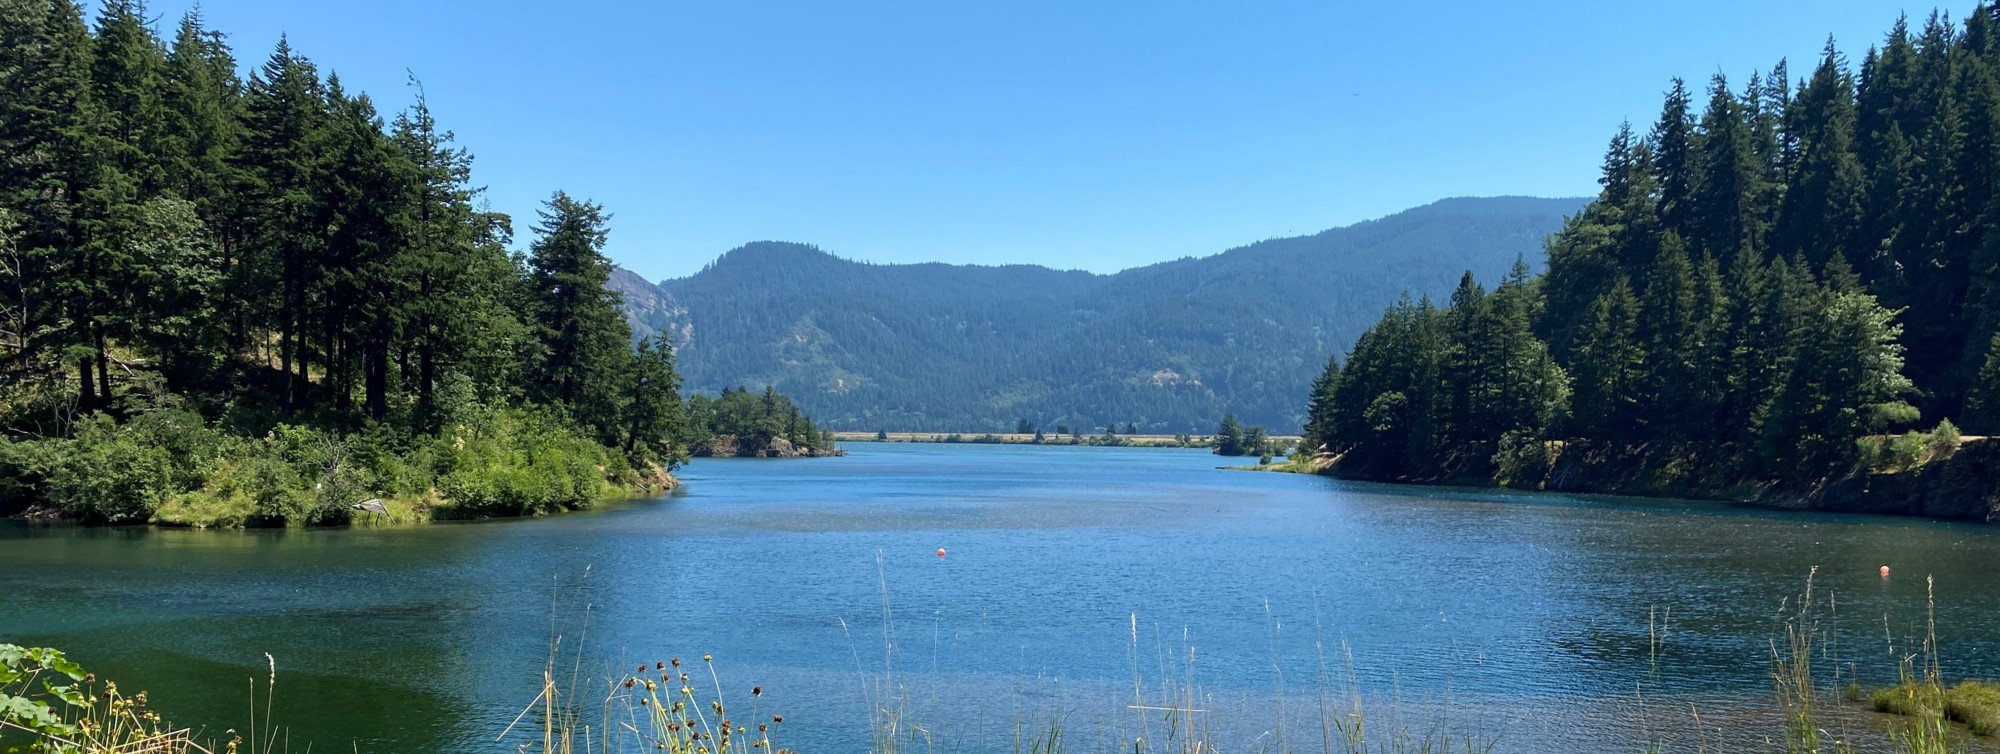 The Little White Salmon River flows into Drano Lake. The lake then drains into the Columbia River, which is just behind the elevated roadway at the center of the photo. Photo by Brent Lawrence / USFWS